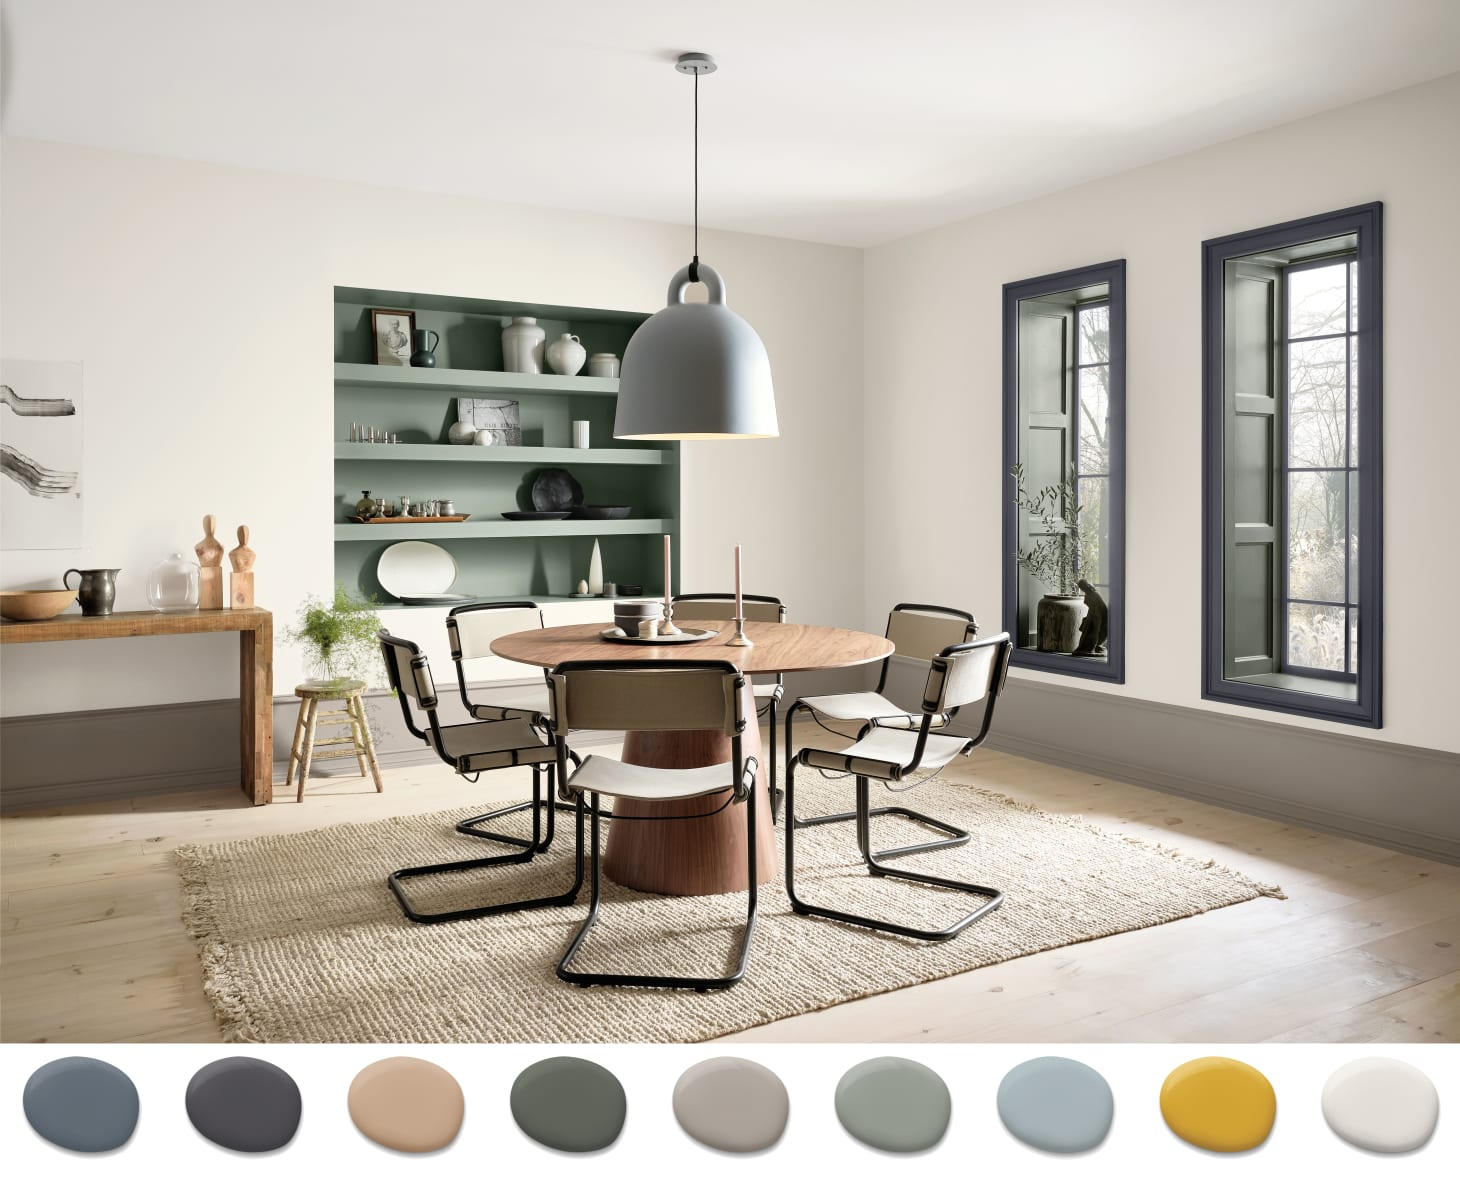 Sherwin-Williams Color Trends 2020 | Apartment Therapy